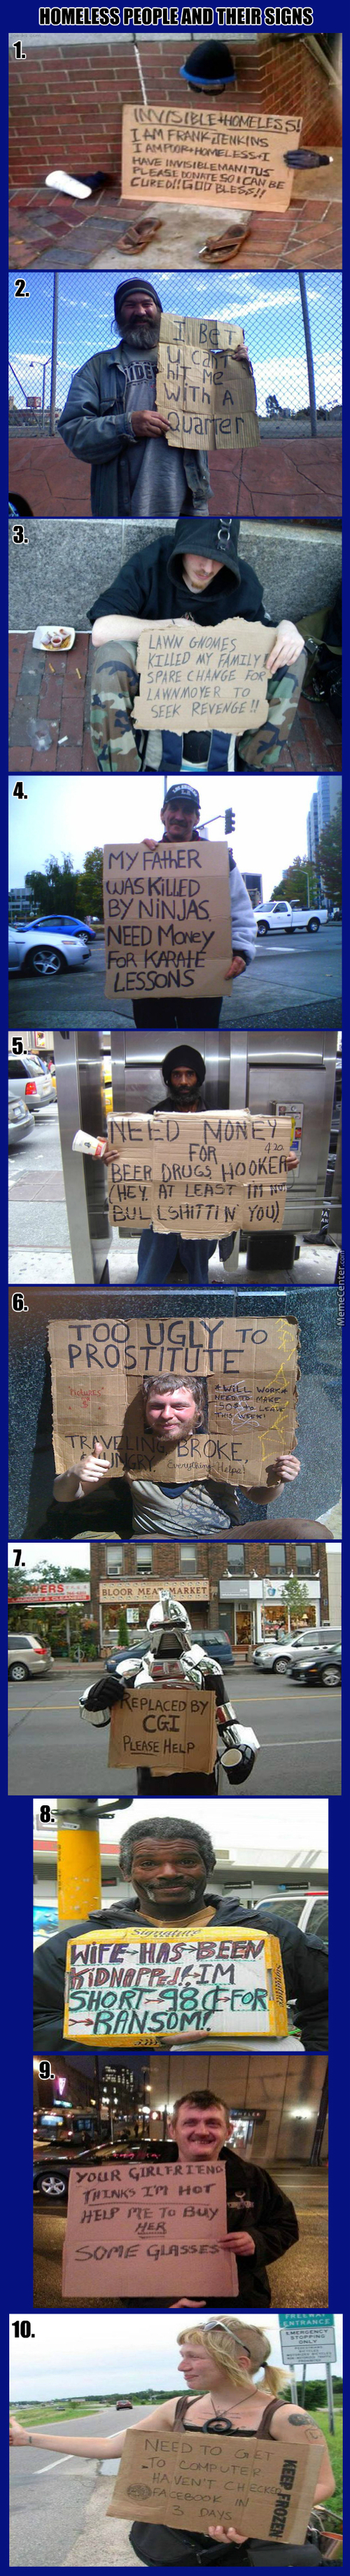 I Don't Know If Some Of These Guys Are Really Homeless But Their Signs Are Really Funny